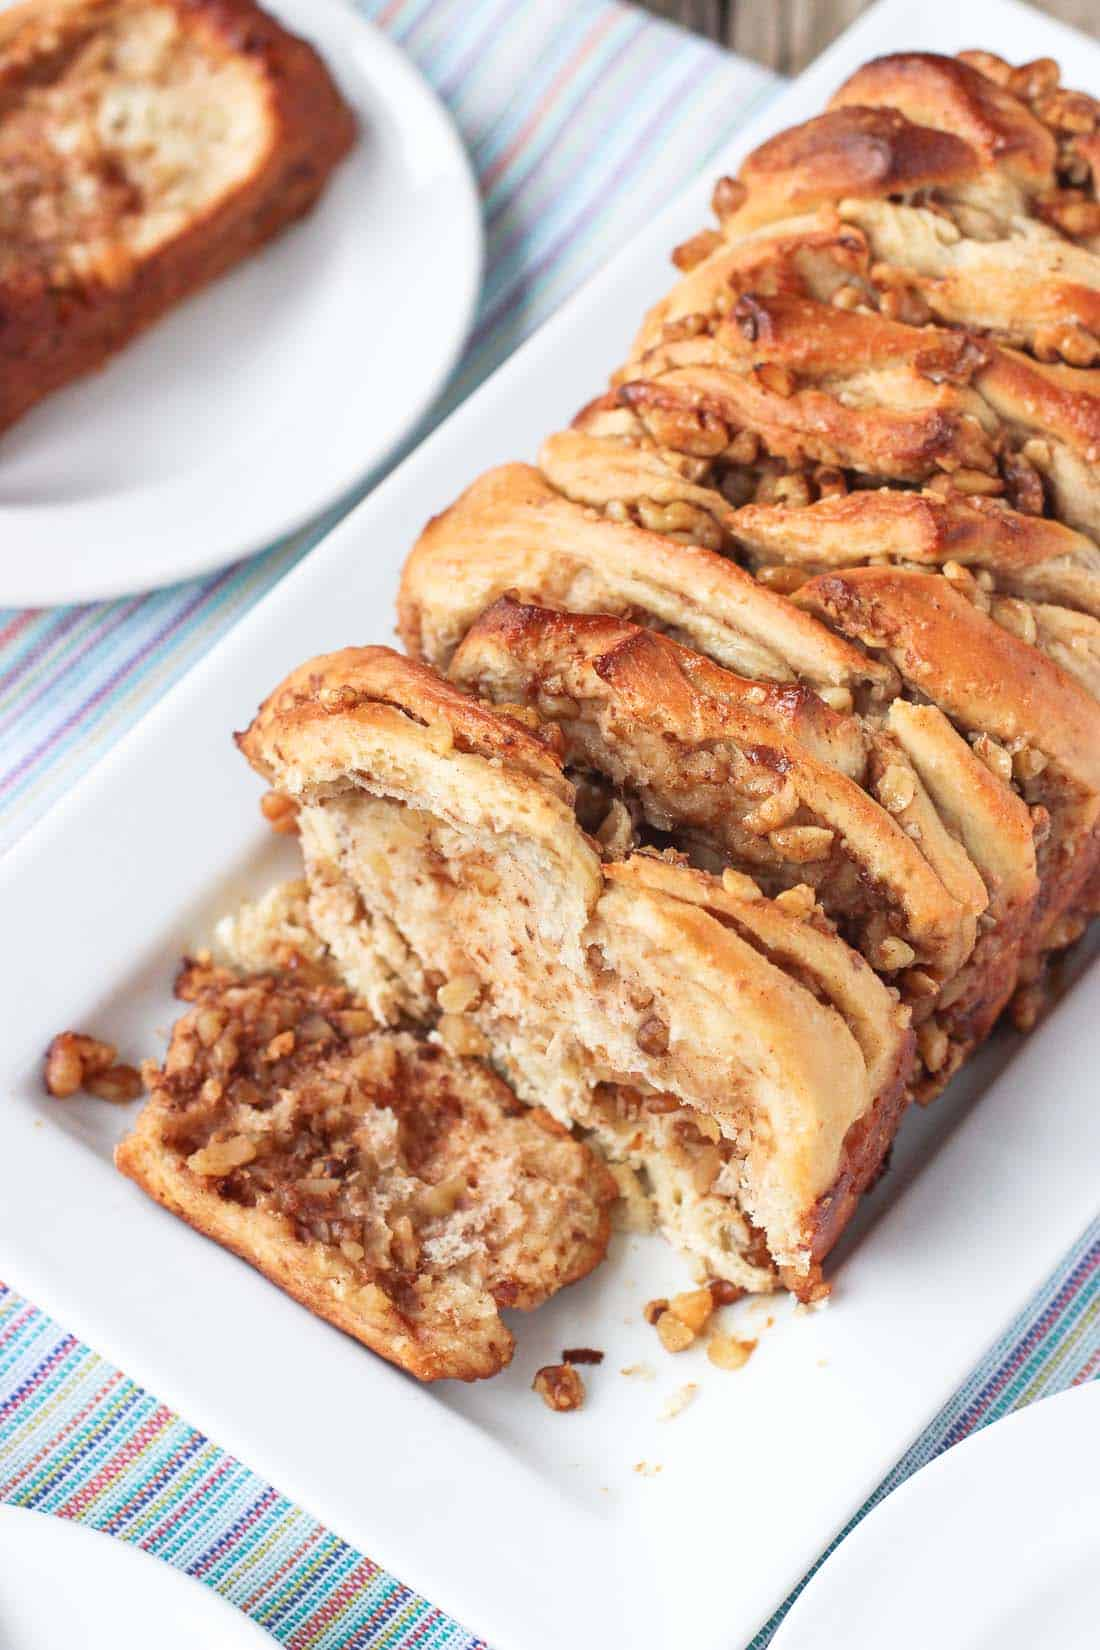 This Maple Walnut Pull-Apart Bread is the perfect bread for brunch (or anytime)! Maple syrup and toasted walnut pieces are bursting throughout this bread with a touch of cinnamon. Plus it's dairy-free!